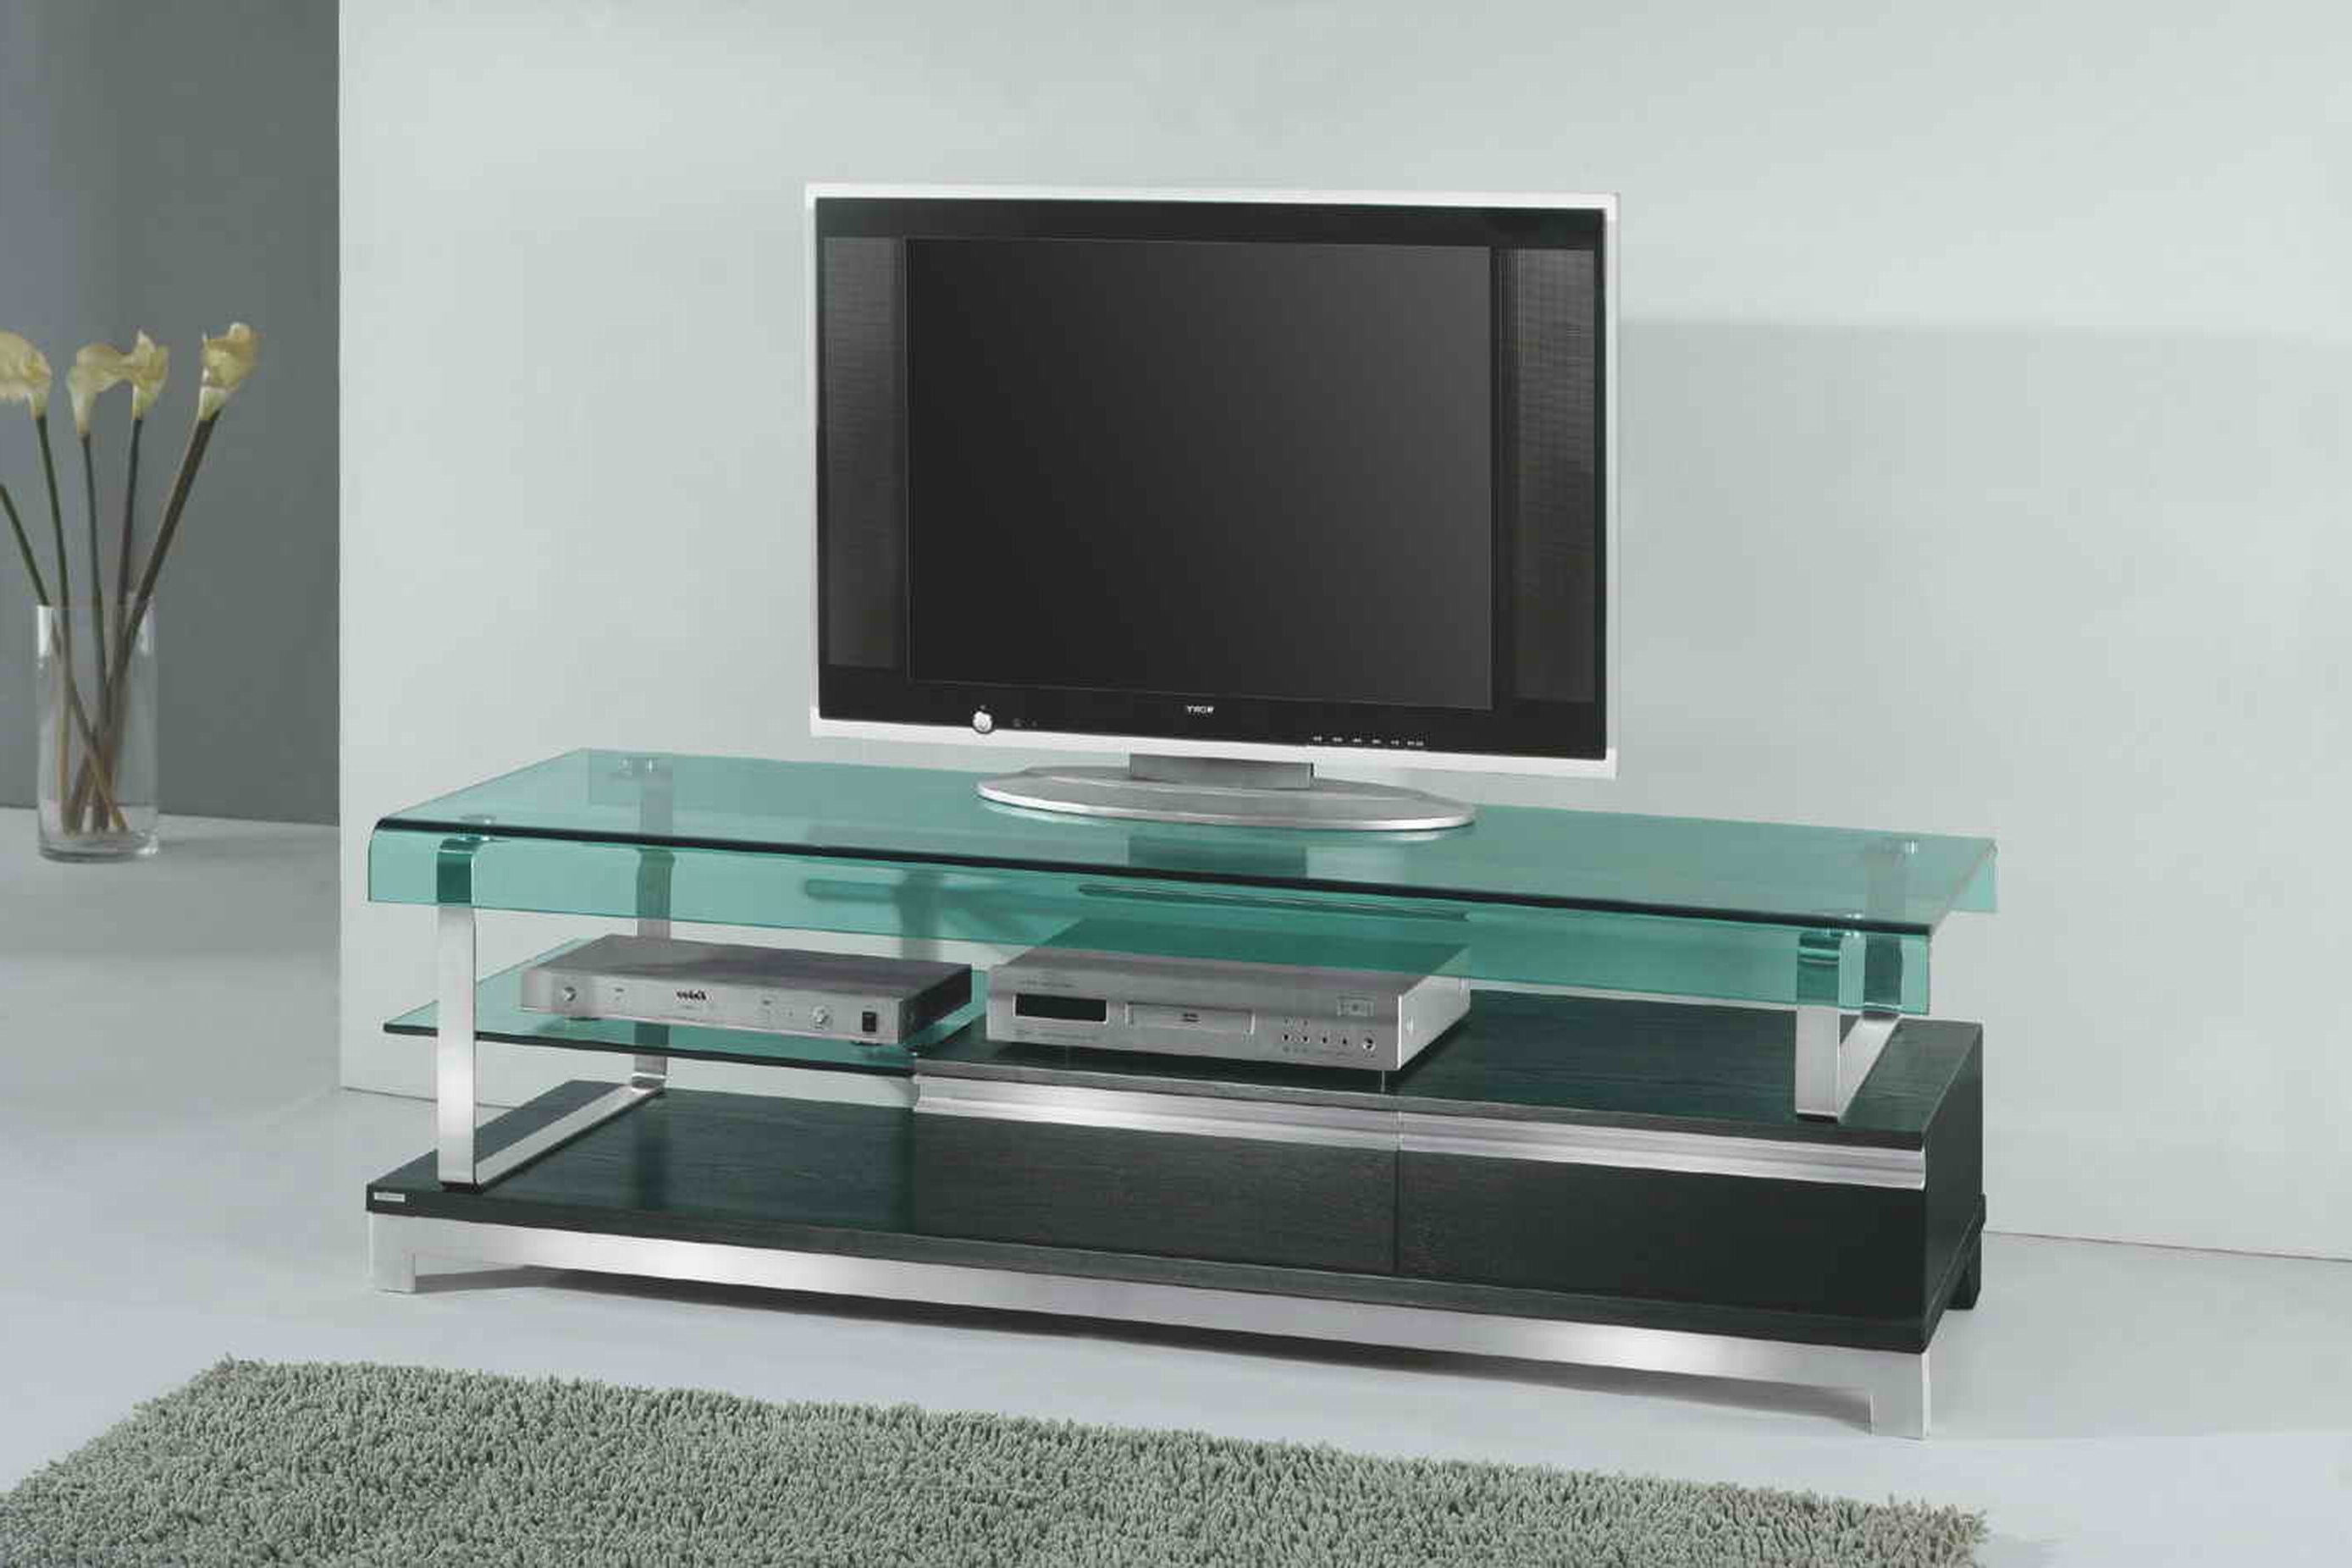 Tall Skinny Tv Stand Narrow Flat Screen Stands For Bedroom Corner With Regard To Trendy Narrow Tv Stands For Flat Screens (View 9 of 20)